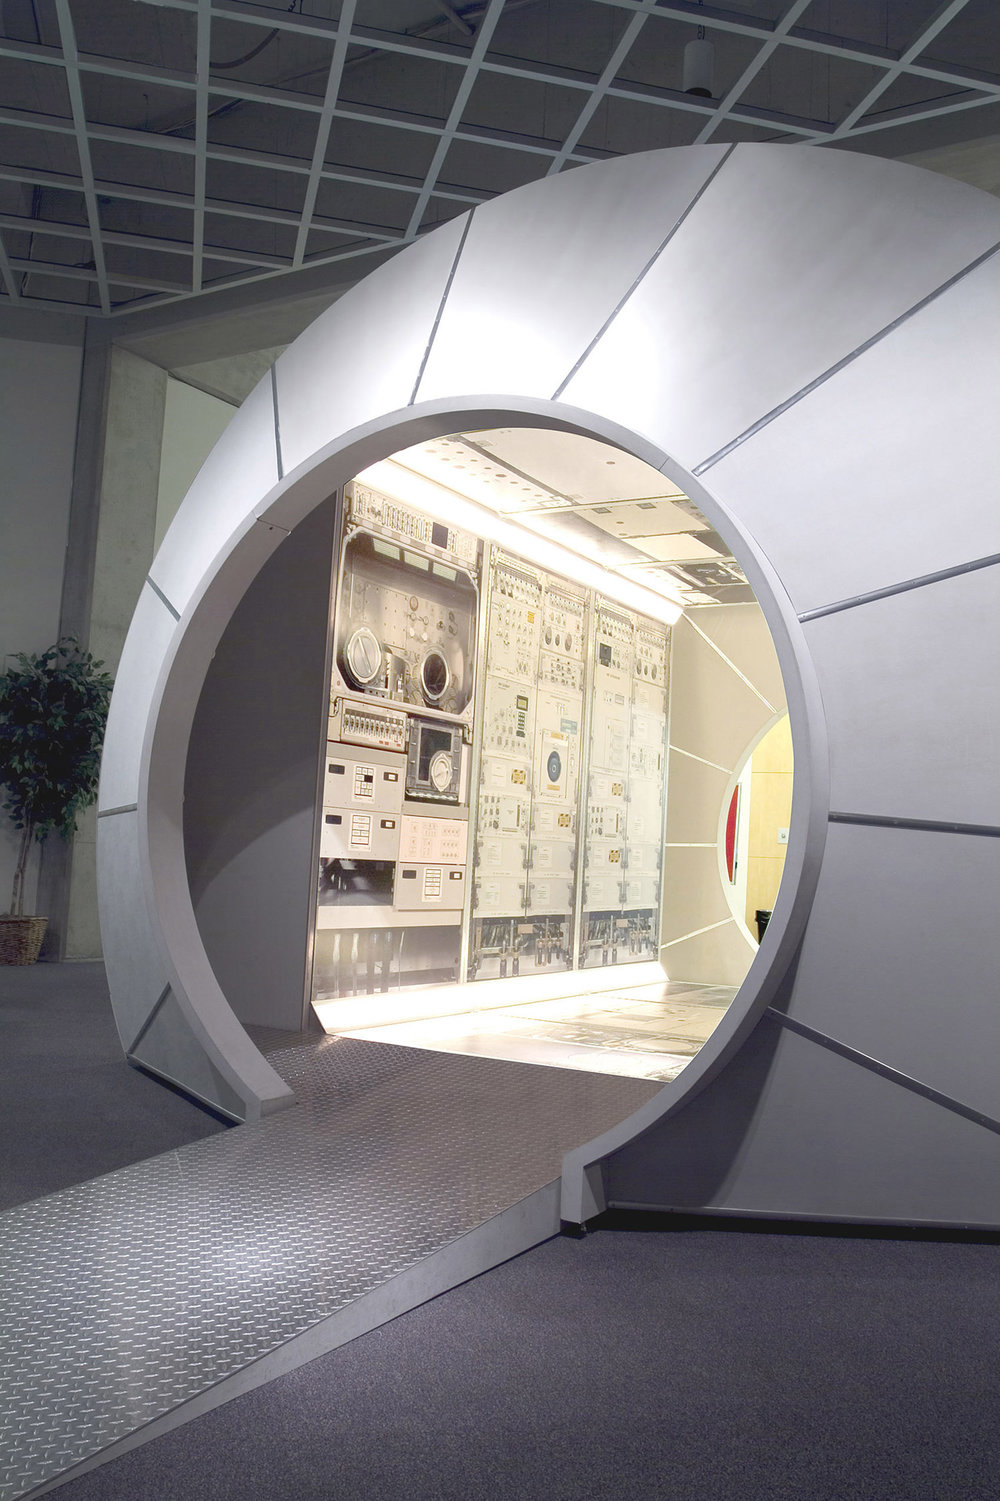 Destiny Space Module Replica Environment